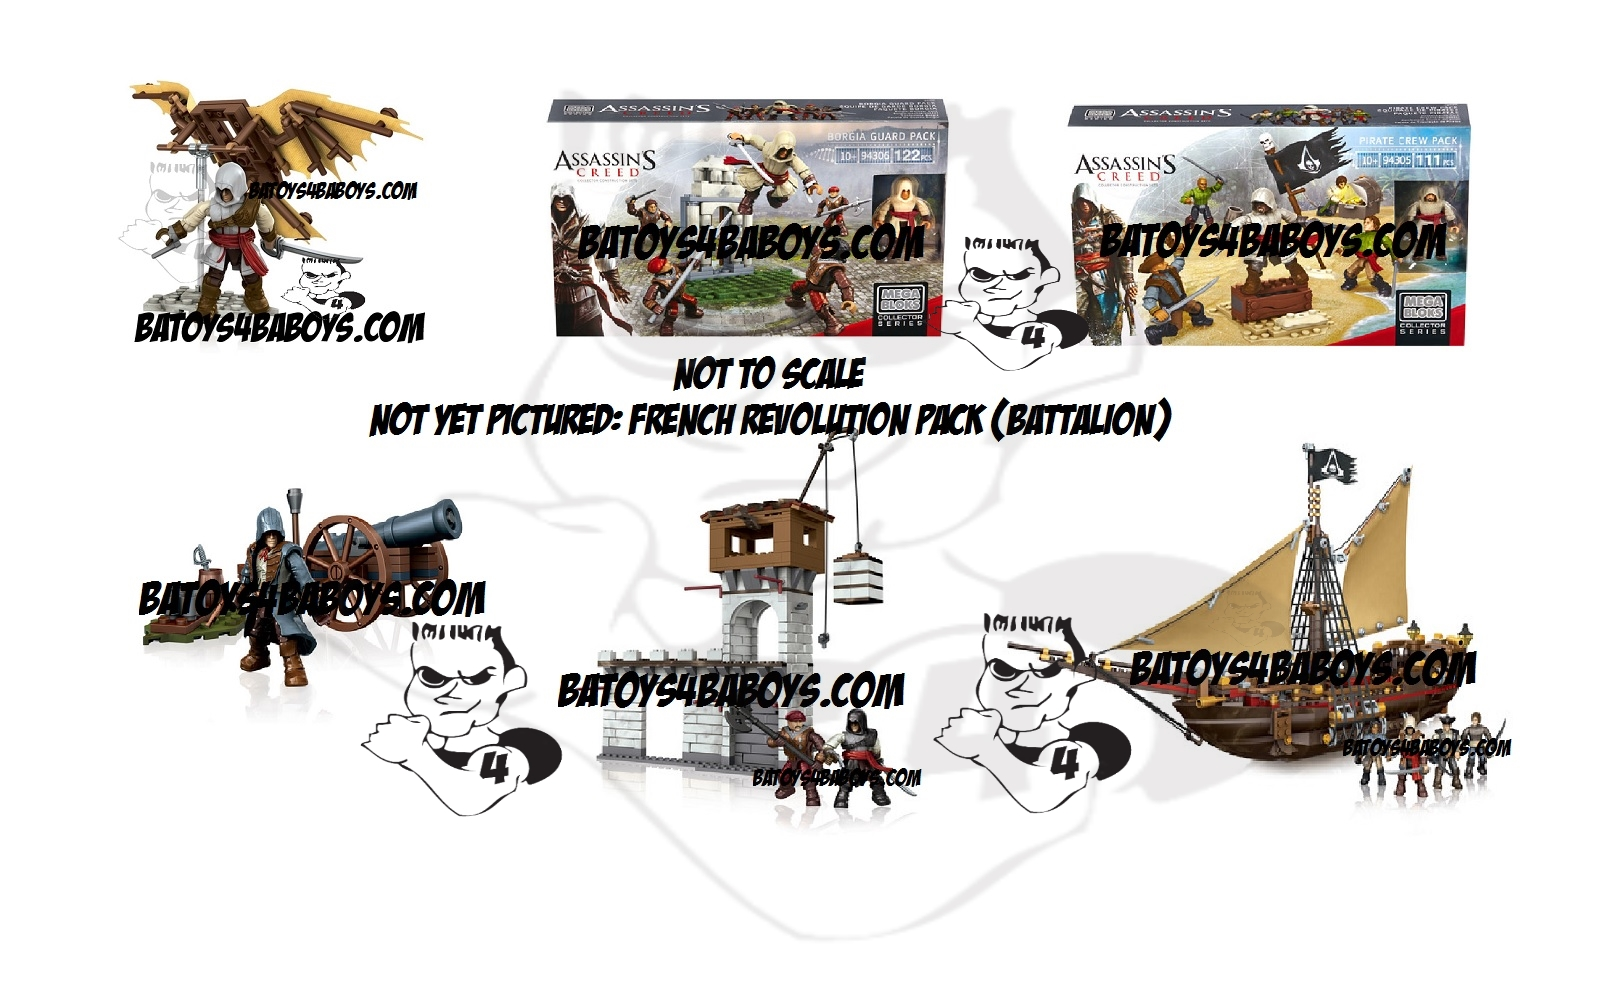 2014 Mega Bloks Assassin's Creed B.A. Toys 2014 Fall ACMB Blitz Bundle officially licensed Mega Bloks Assassin's Creed product at B.A. Toys.